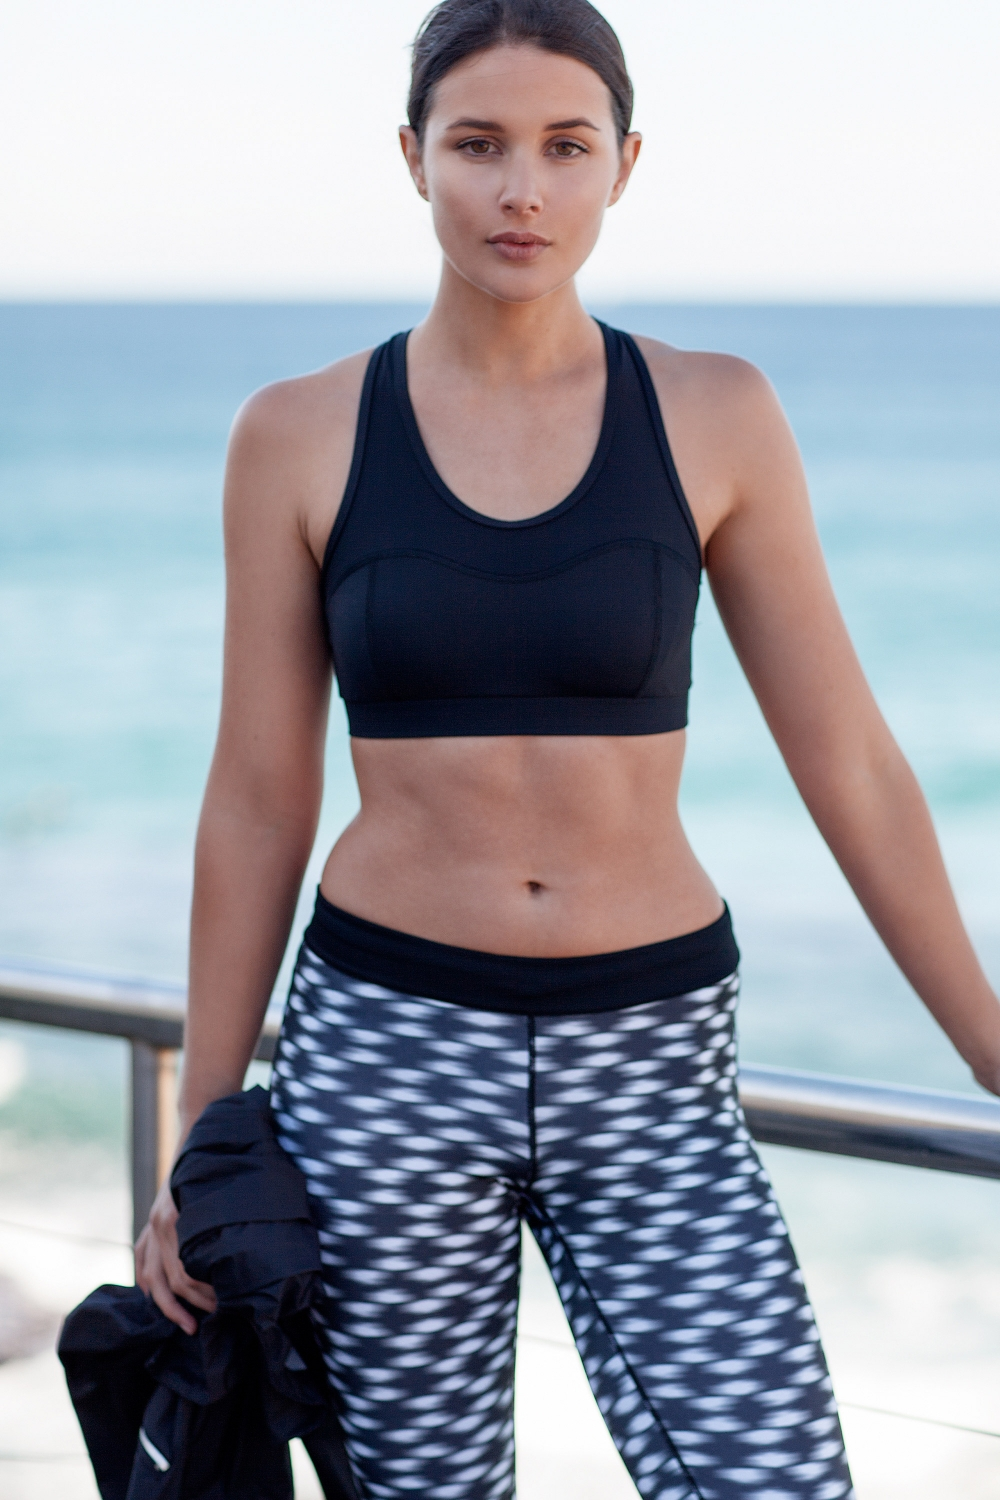 harper-and-harley_sara-donaldson_activewear_health_workout_gym_Running-Bare_Nike_3